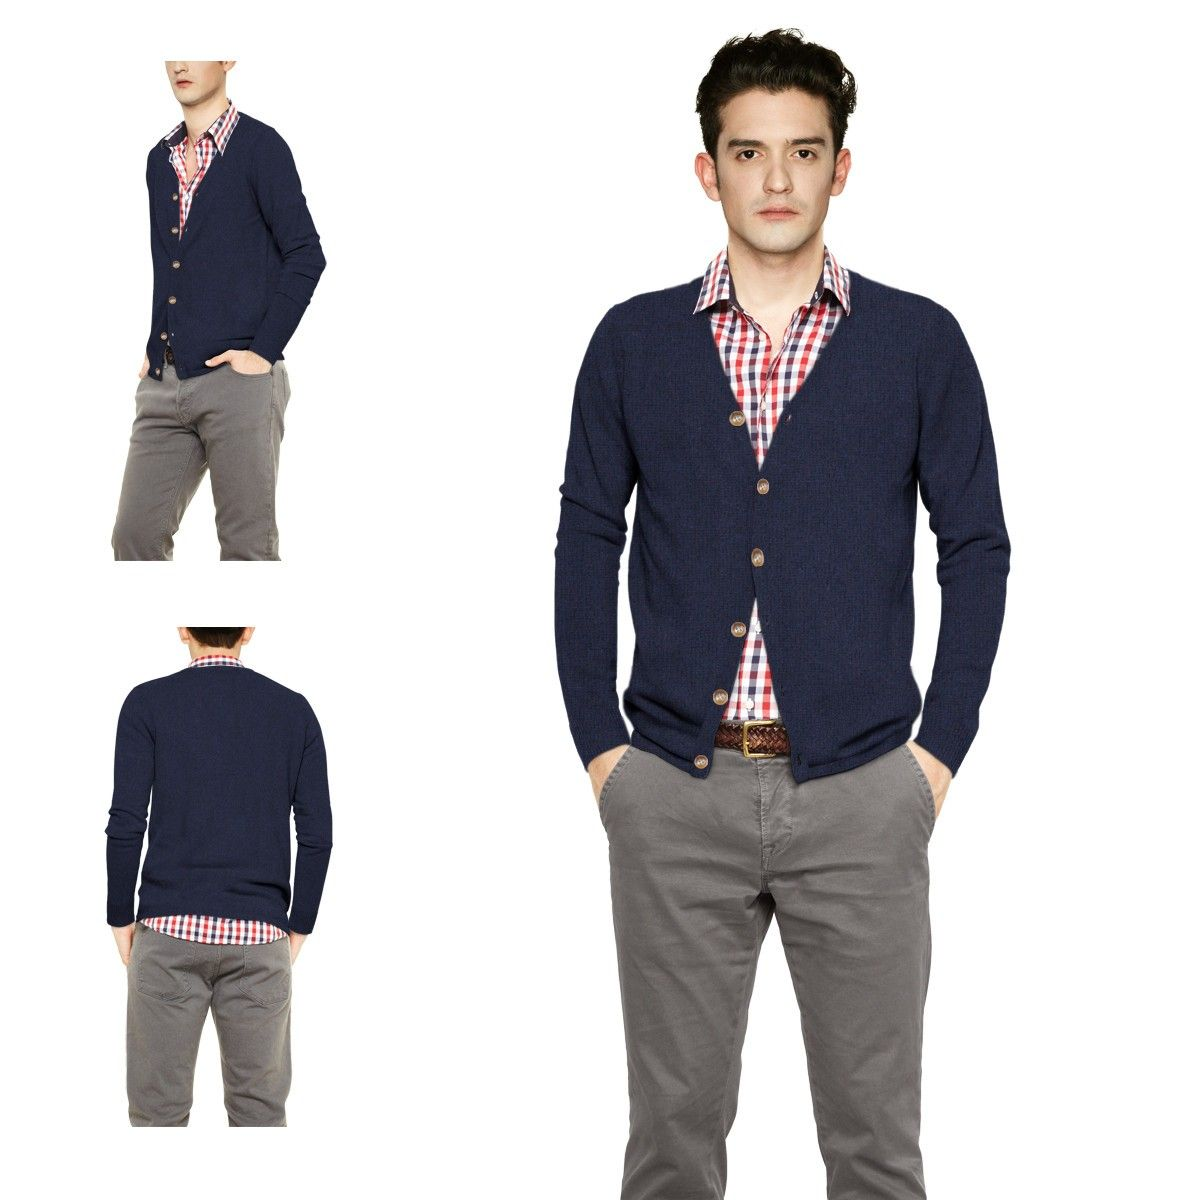 navy-blue-big-v-collar-cardigan-R201240009.jpg 1,200×1,200 pixels ...